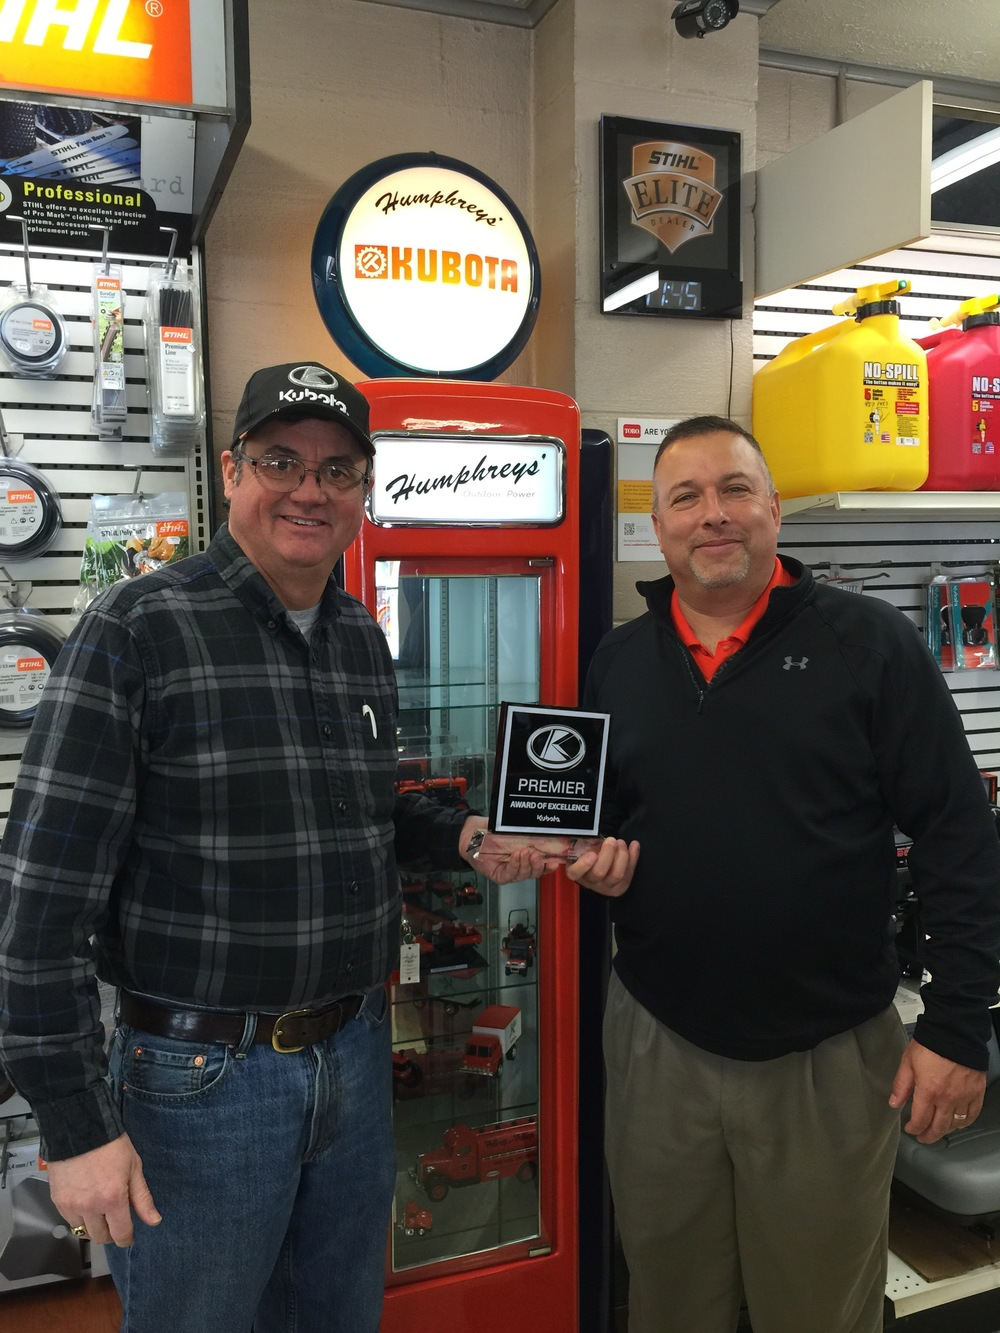 Brian Humphreys (Owner) of Humphreys' Outdoor Power Receives the Premier Award of Excellence from John Brookbank of Kubota